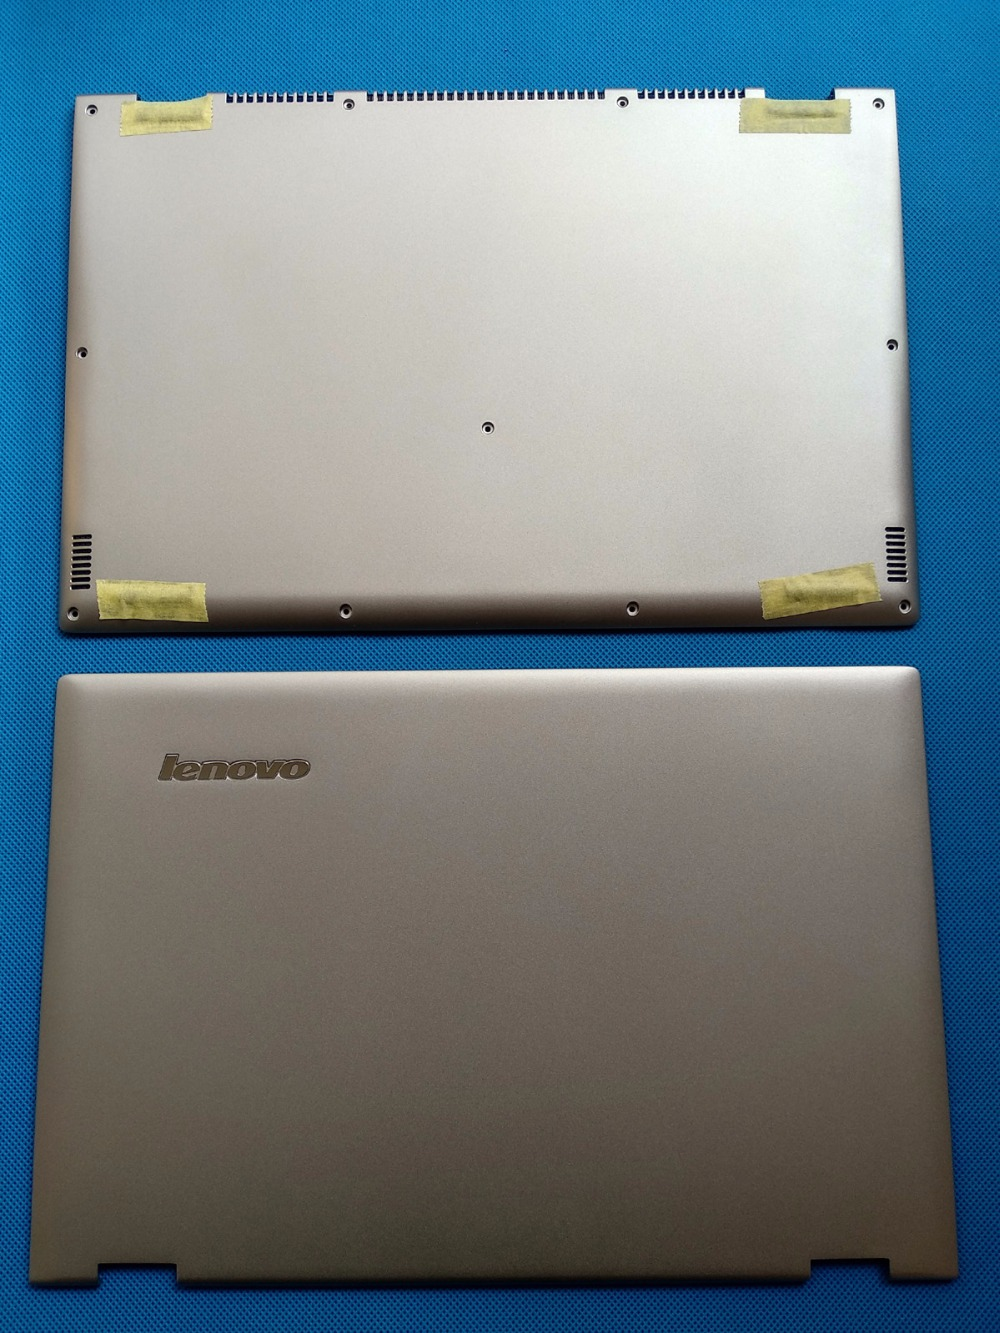 New Original Lenovo Ideapad Yoga 2 Pro 13 LCD Back Rear Lid Cover+ Base Cover Bottom Lower Case AM0S9000310 AM0S9000210 silvery new original for lenovo thinkpad x1 carbon 5th gen 5 back shell bottom case base cover 01lv461 sm10n01545